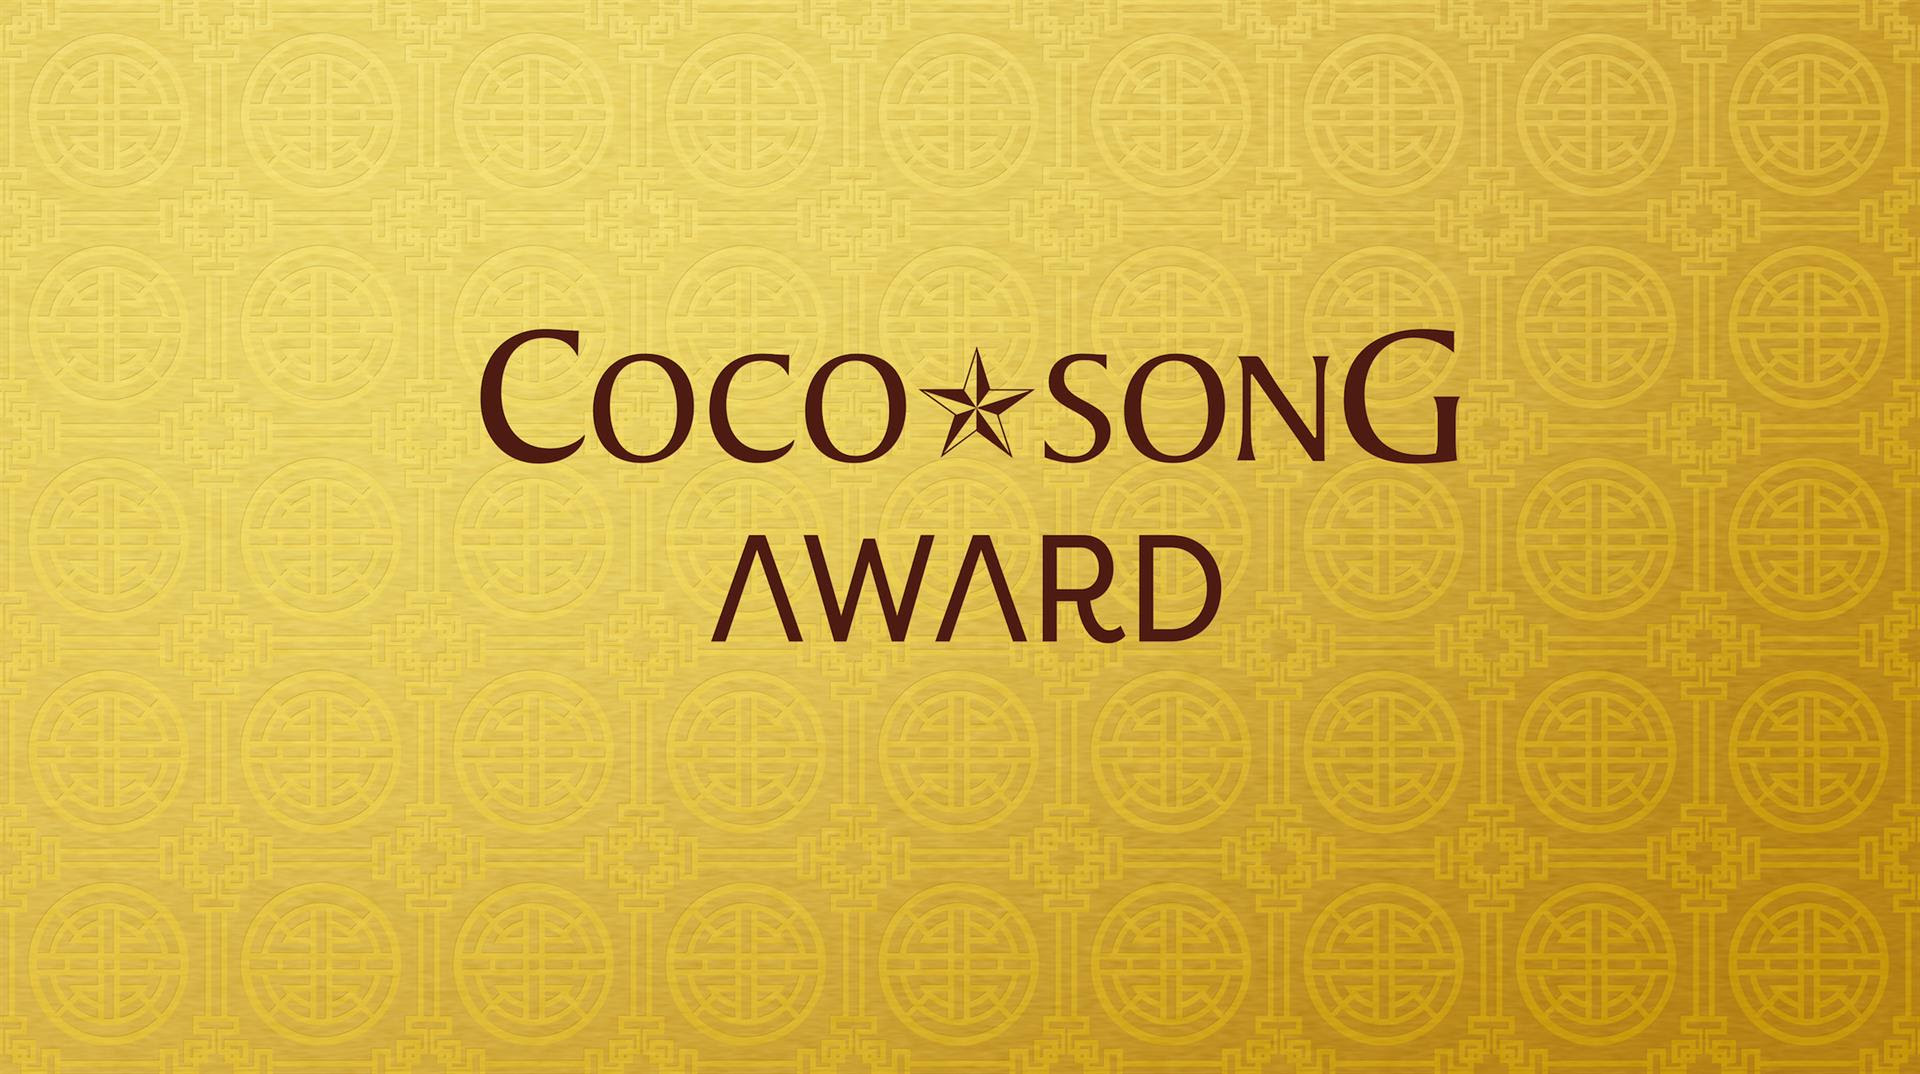 Five finalists for Coco Song Award